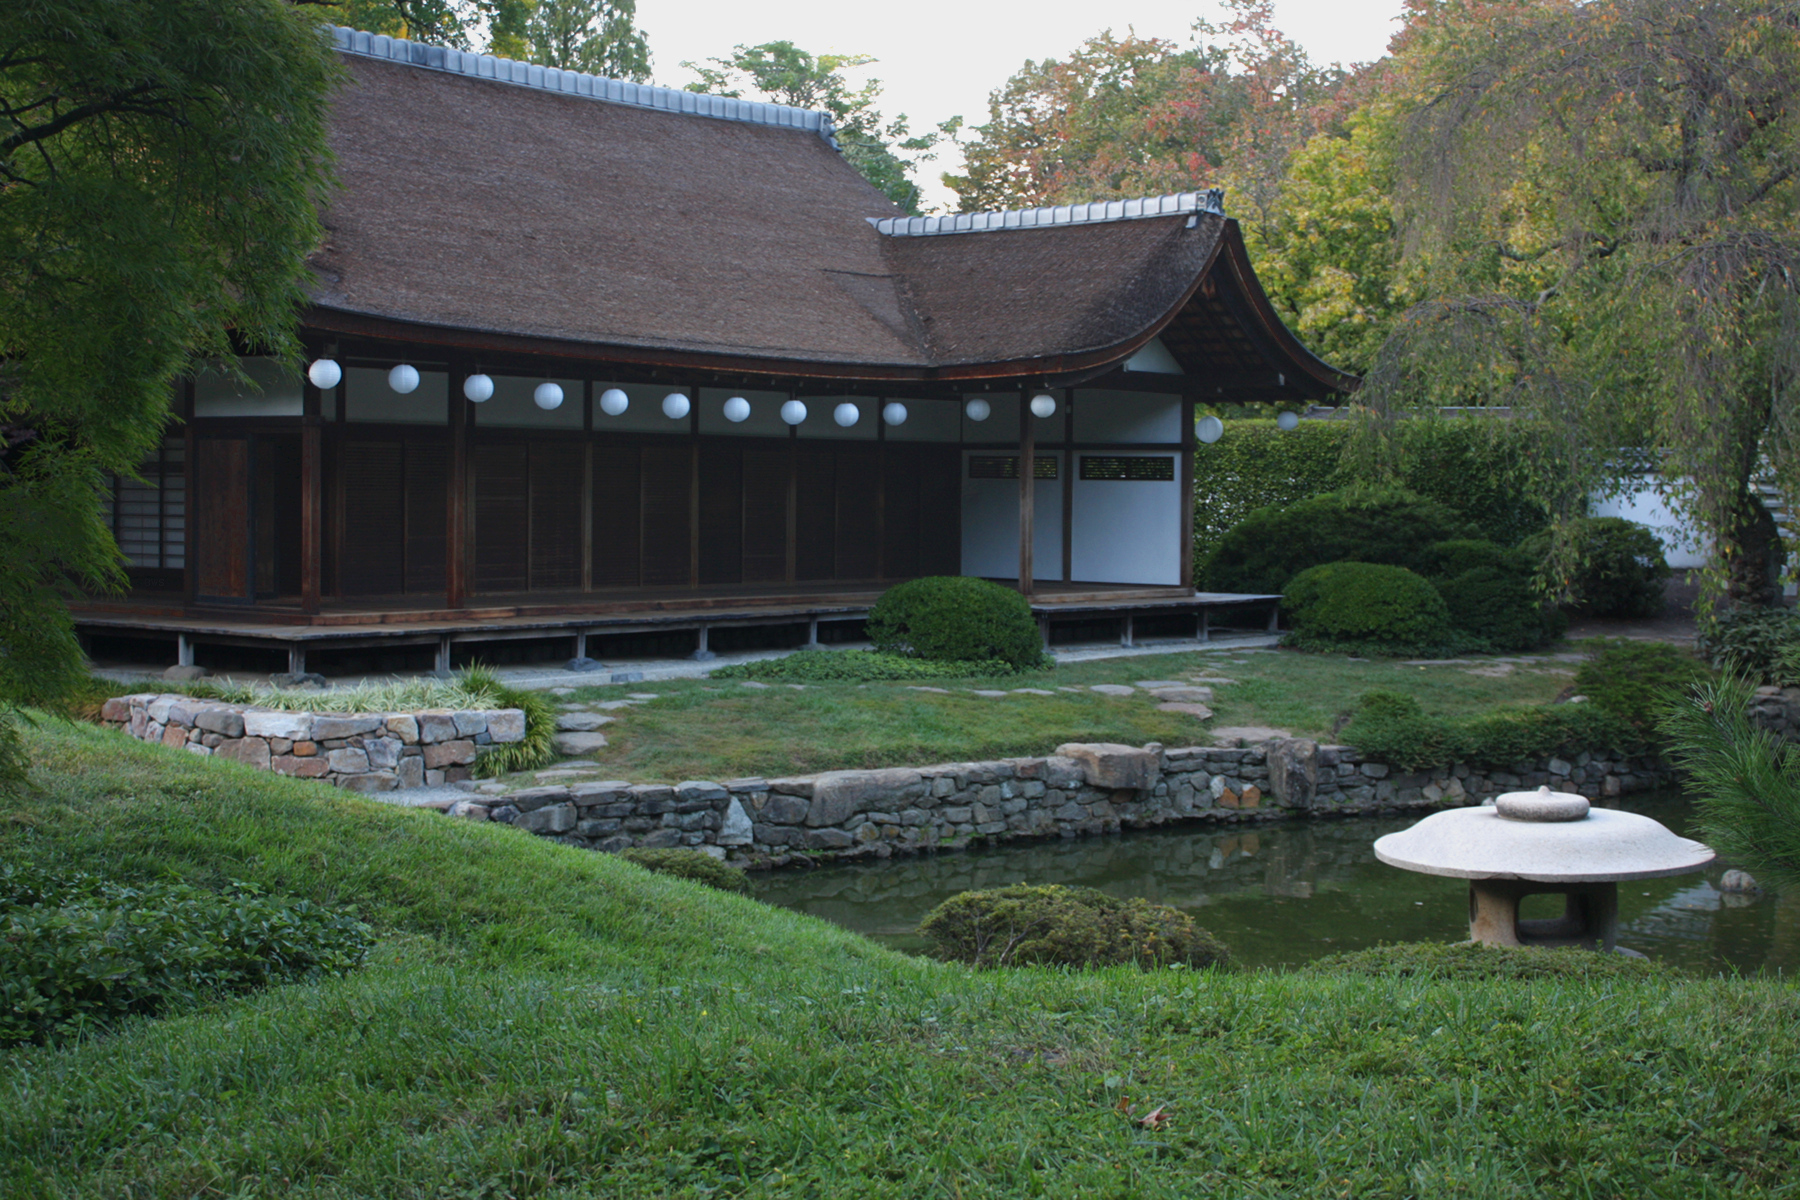 File A579 Shofuso Japanese House And Garden Fairmount Park Philadelphia Pennsylvania United